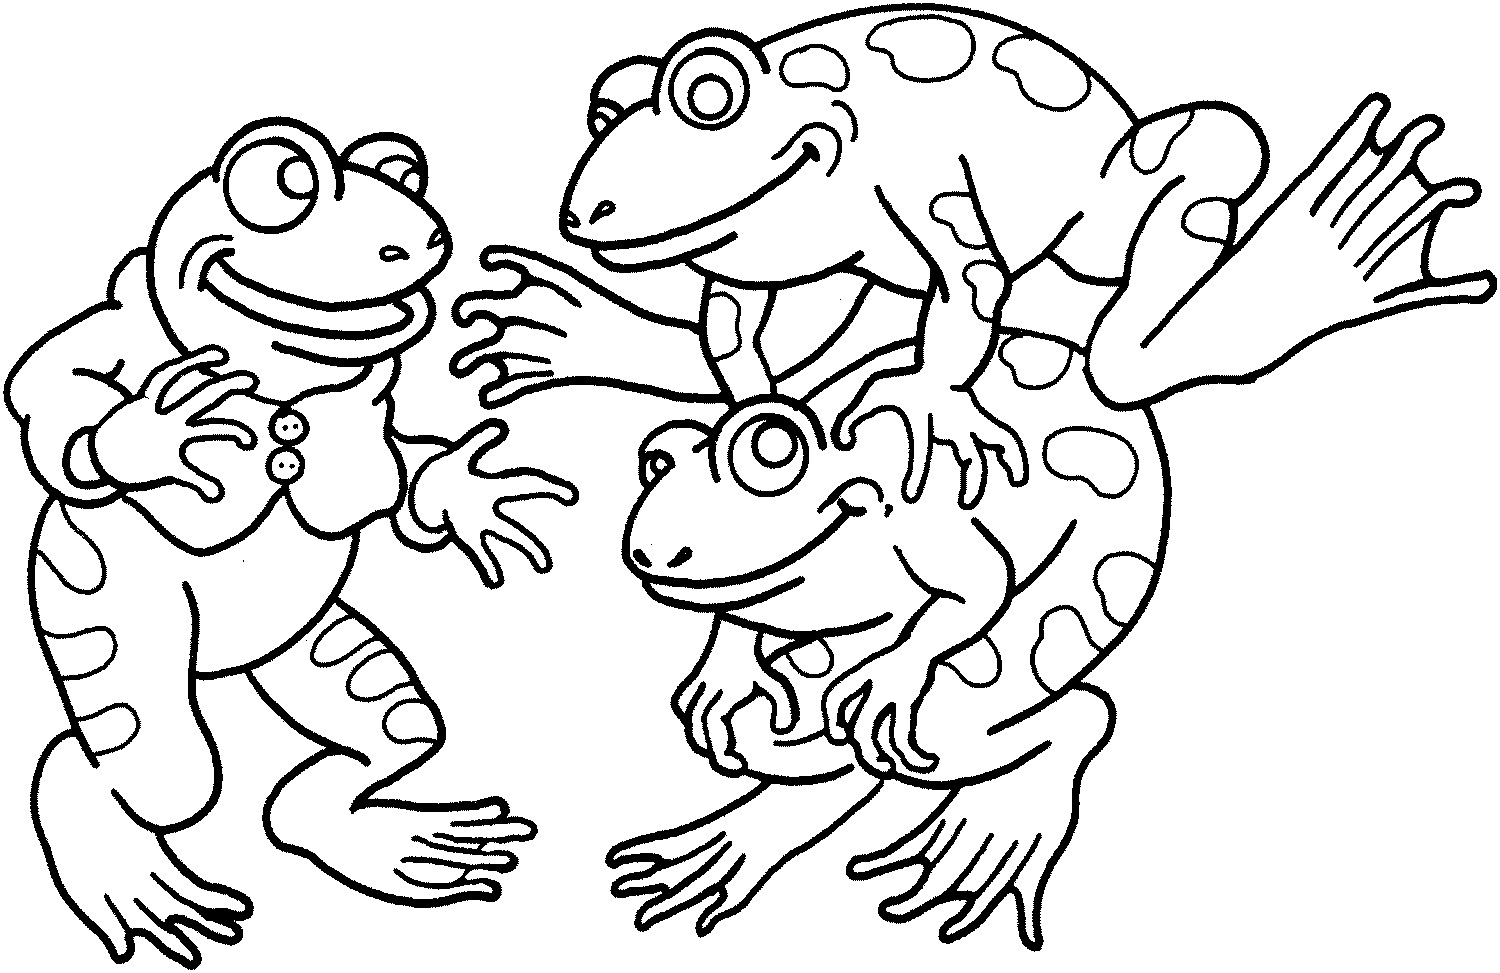 1500x973 Free Printable Frog Coloring Pages For Kids